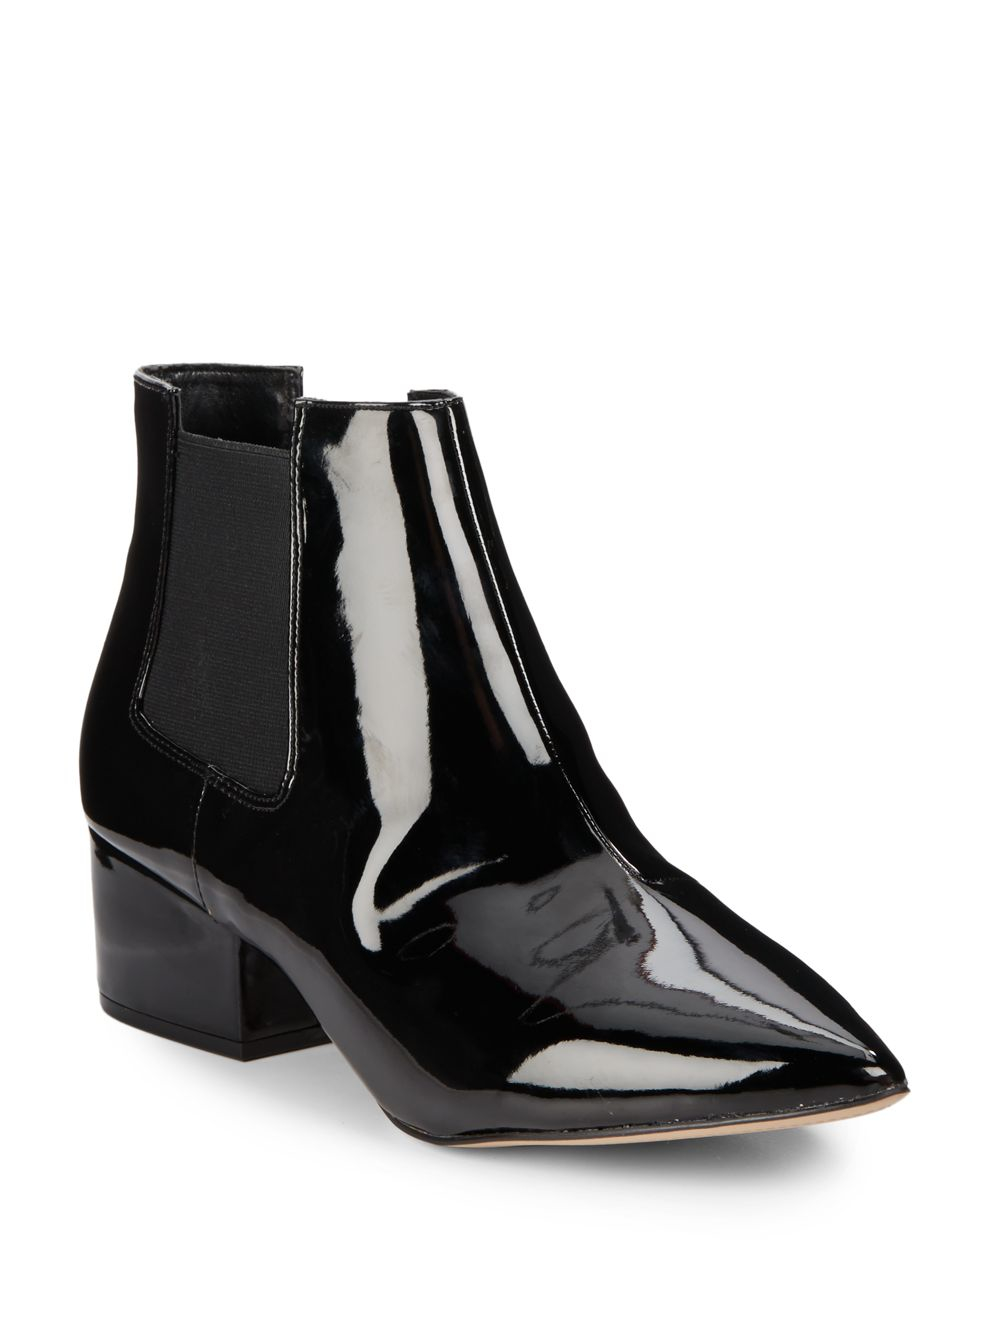 eb66086ae83 French Connection Ronan Faux Patent Leather Point Toe Chelsea Boots ...